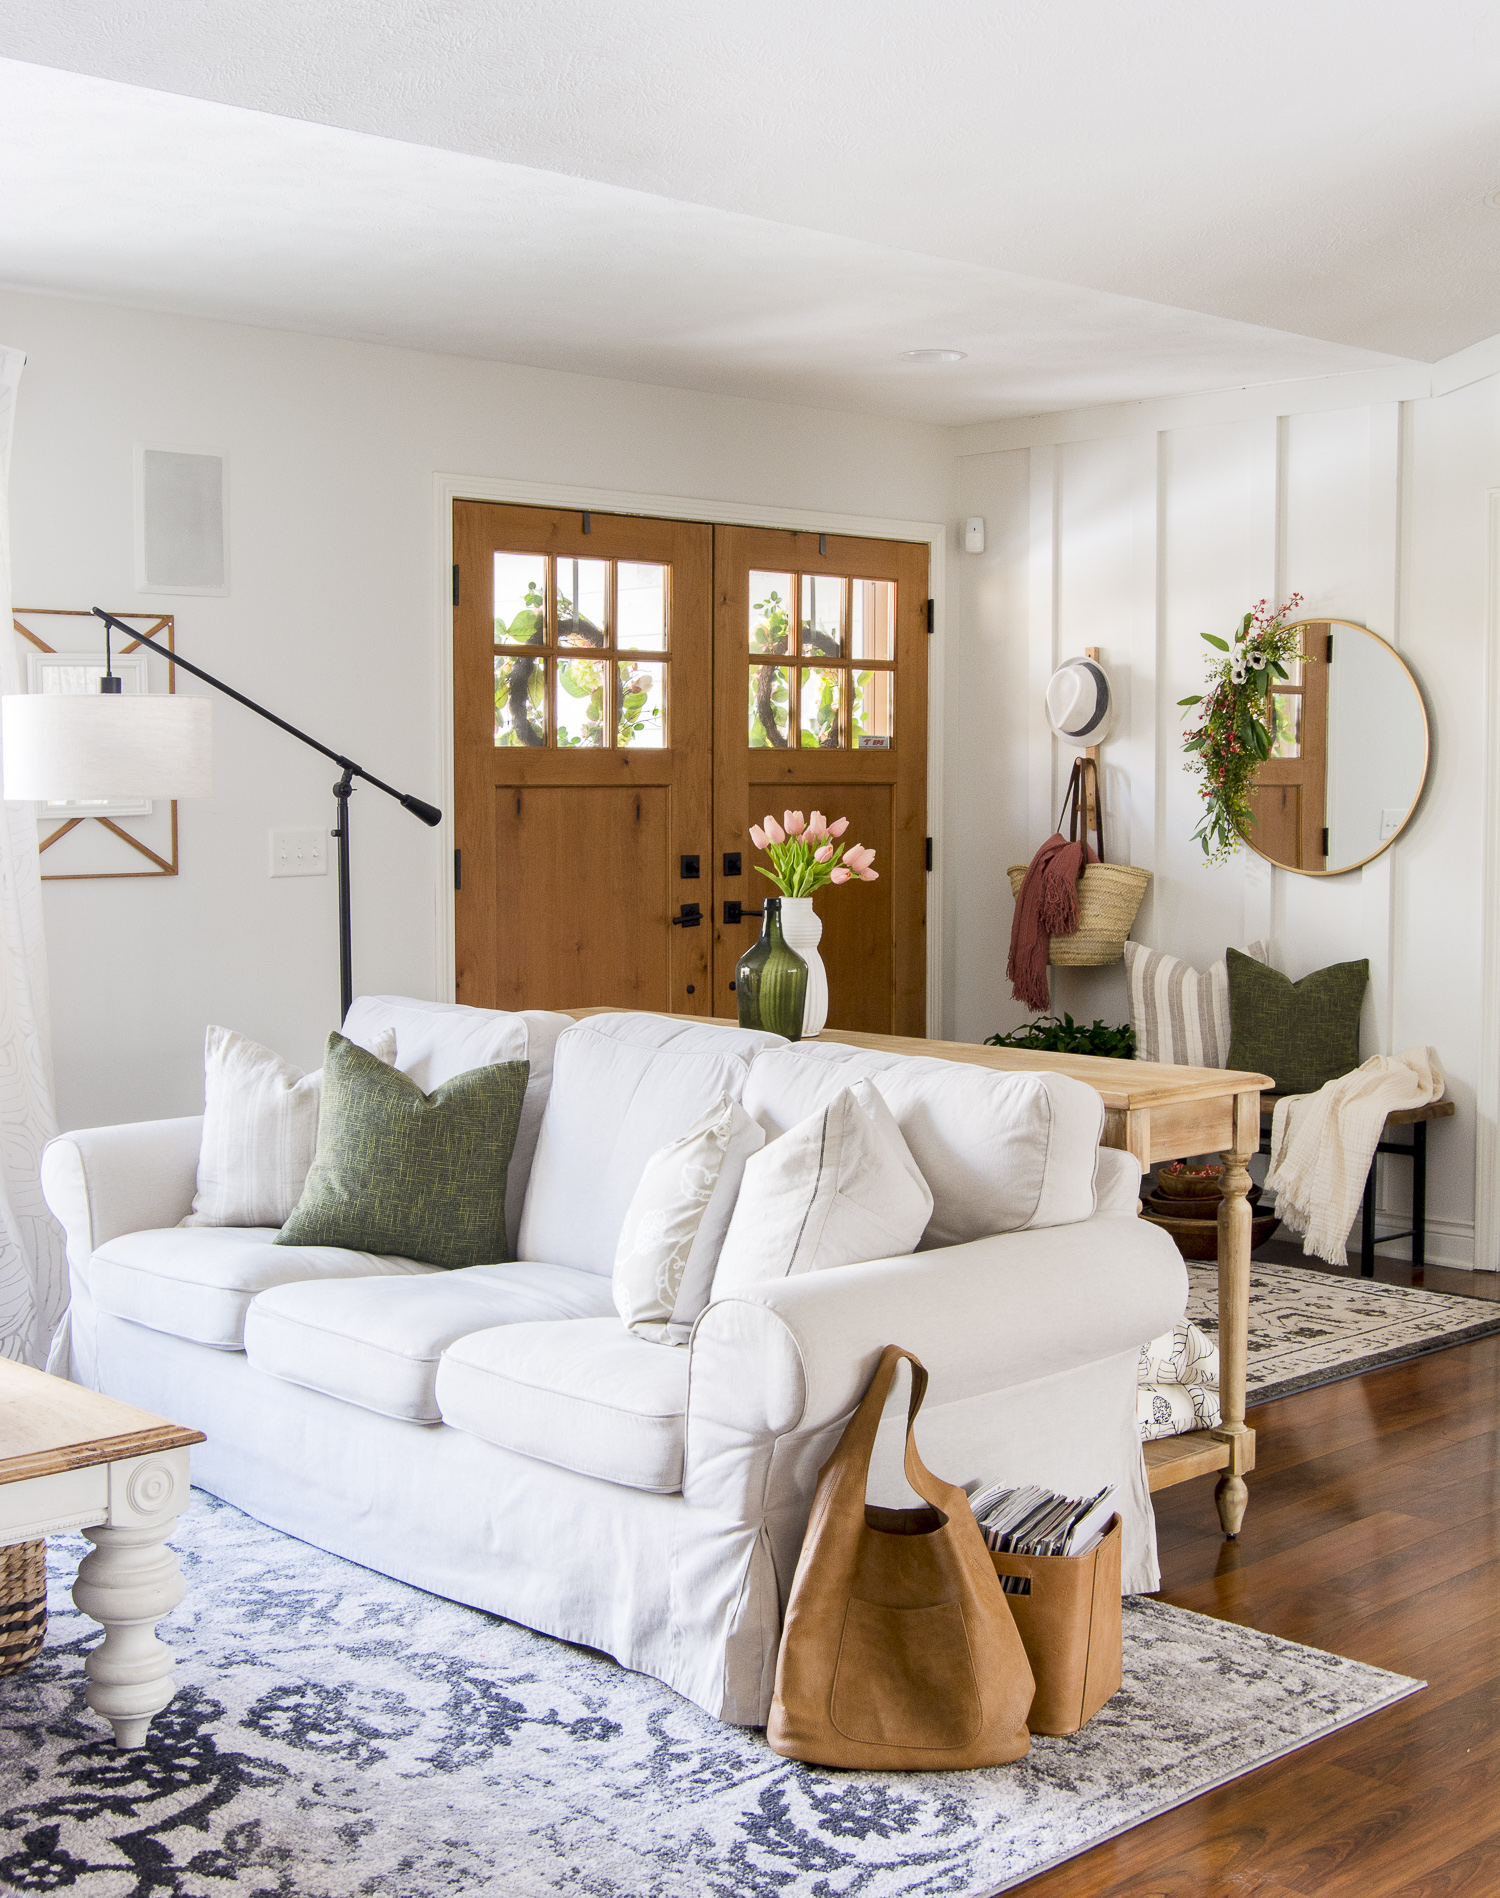 Neutral Spring Decor Ideas for the Modern Farmhouse Home